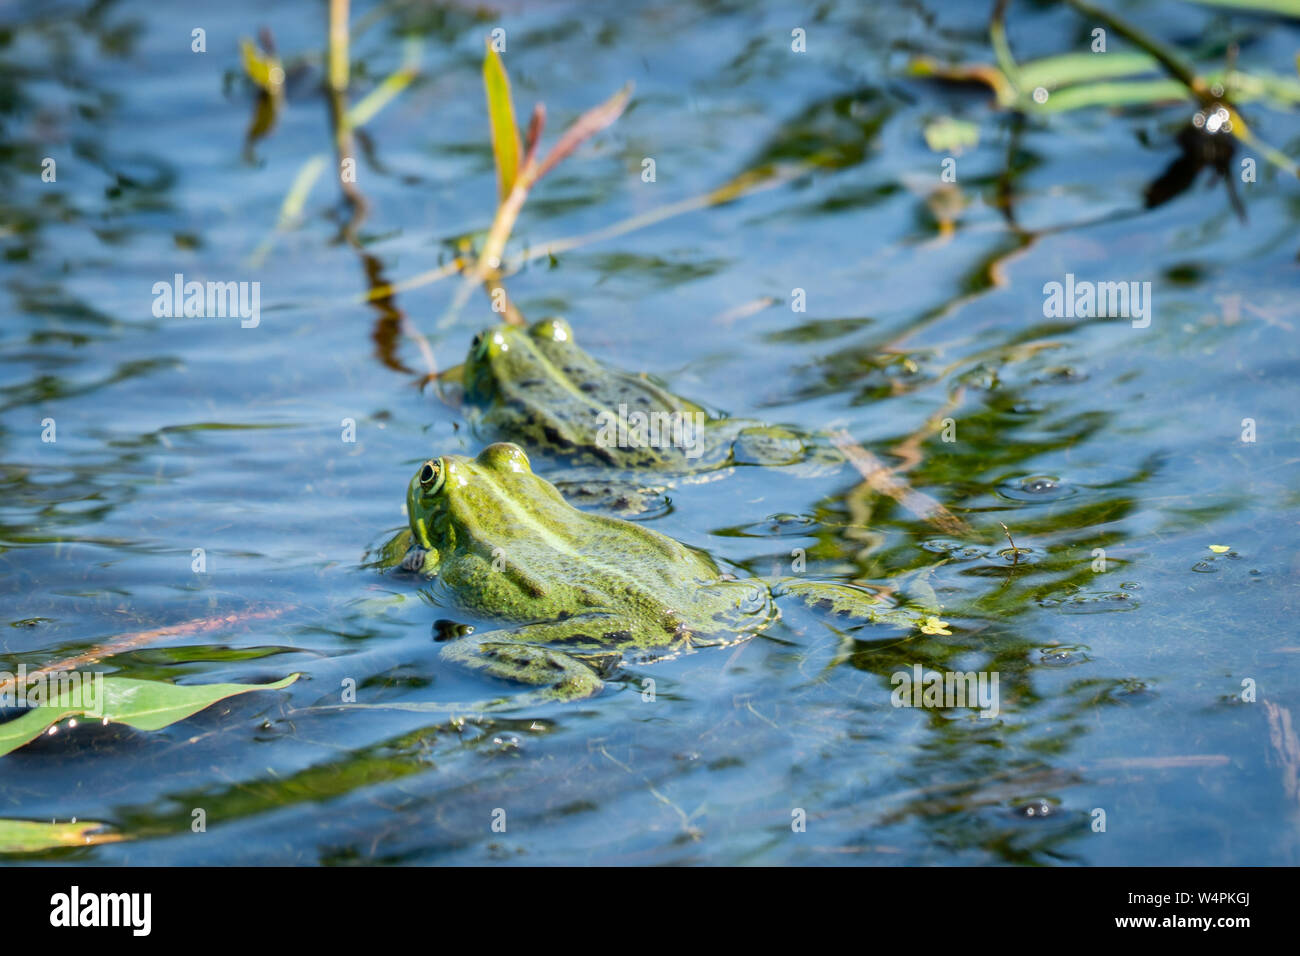 Two green frogs swimming in the water of a little lake, between the water plants. The larger male is following the female during mating time. Seen fro Stock Photo - Alamy